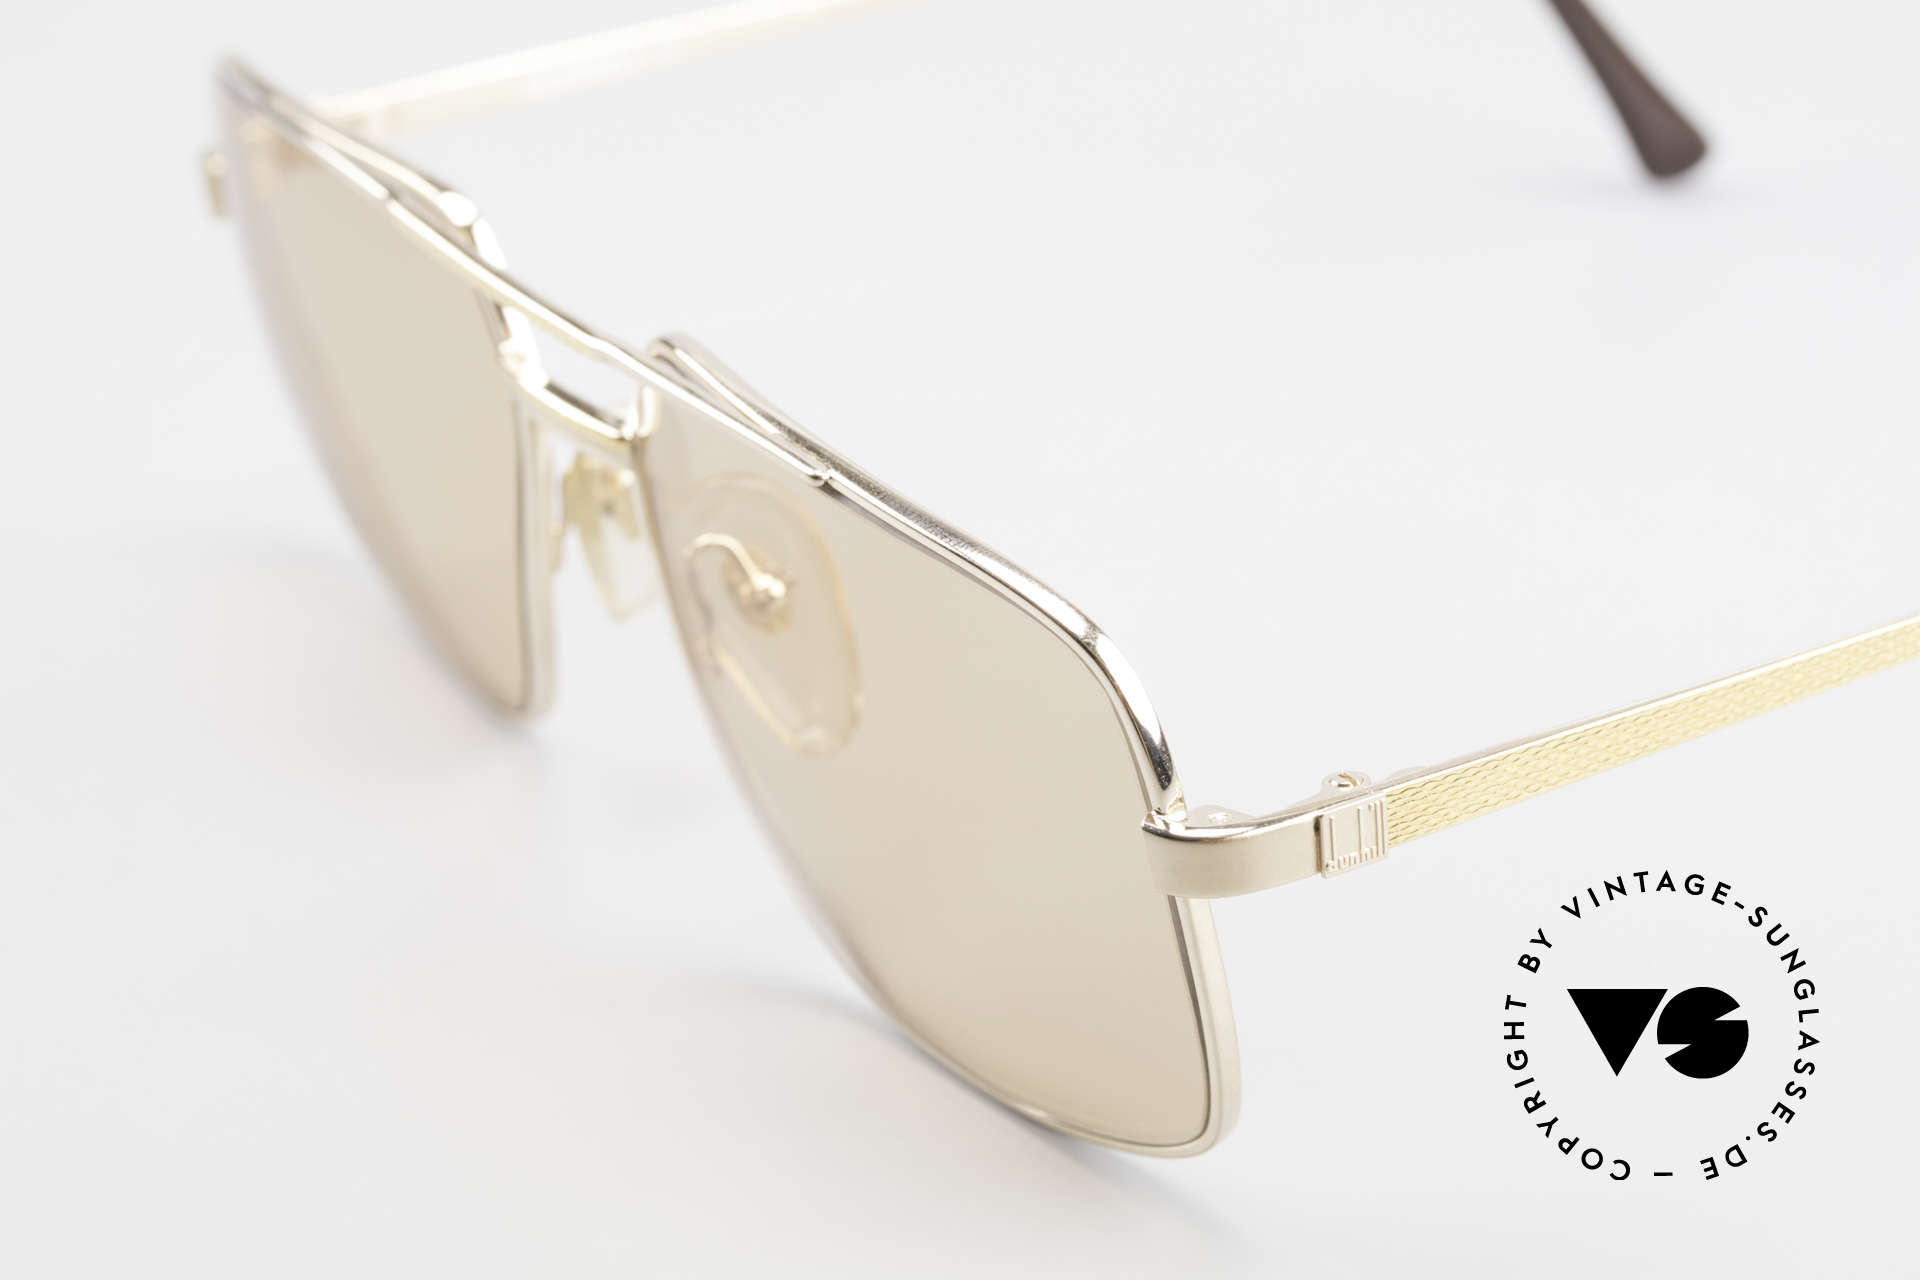 Dunhill 6068 Gold Plated Frame Changeable, changeable sun lenses (darken automatically in the sun), Made for Men